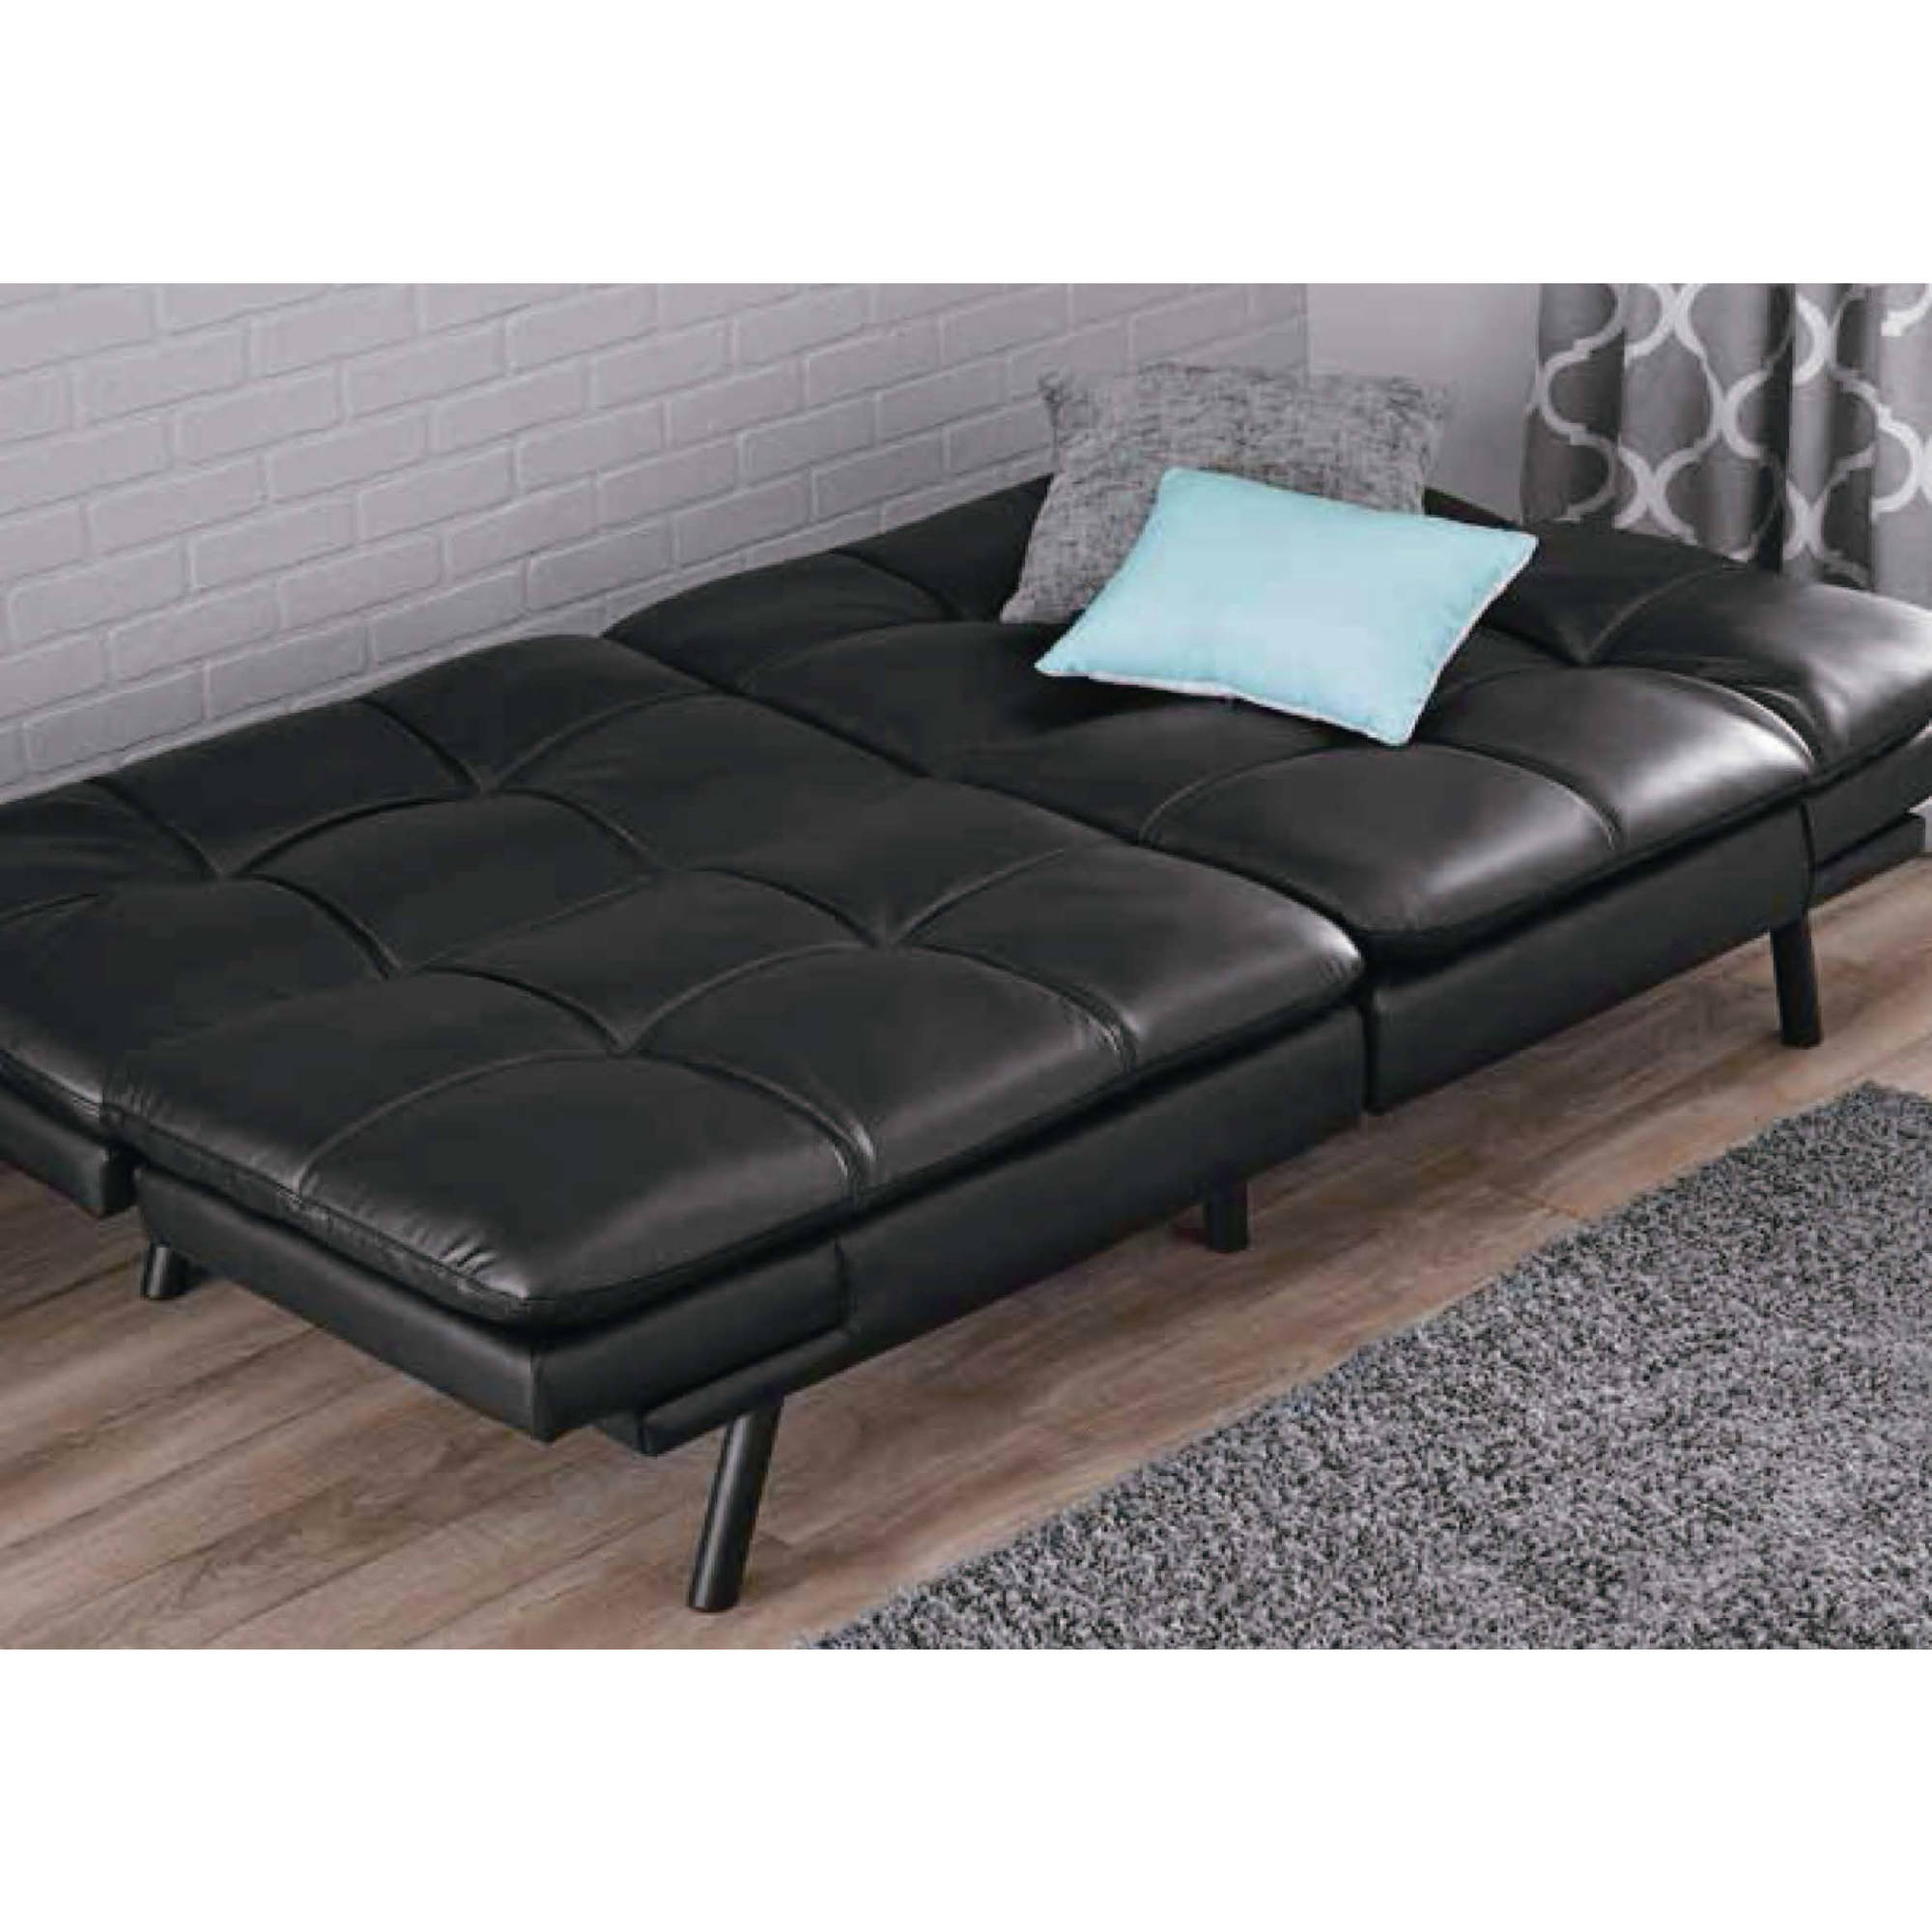 futon couch stylish bestartisticinteriors bed sofa lounger microfiber beds recliner mattress com folding vsppxqp storage